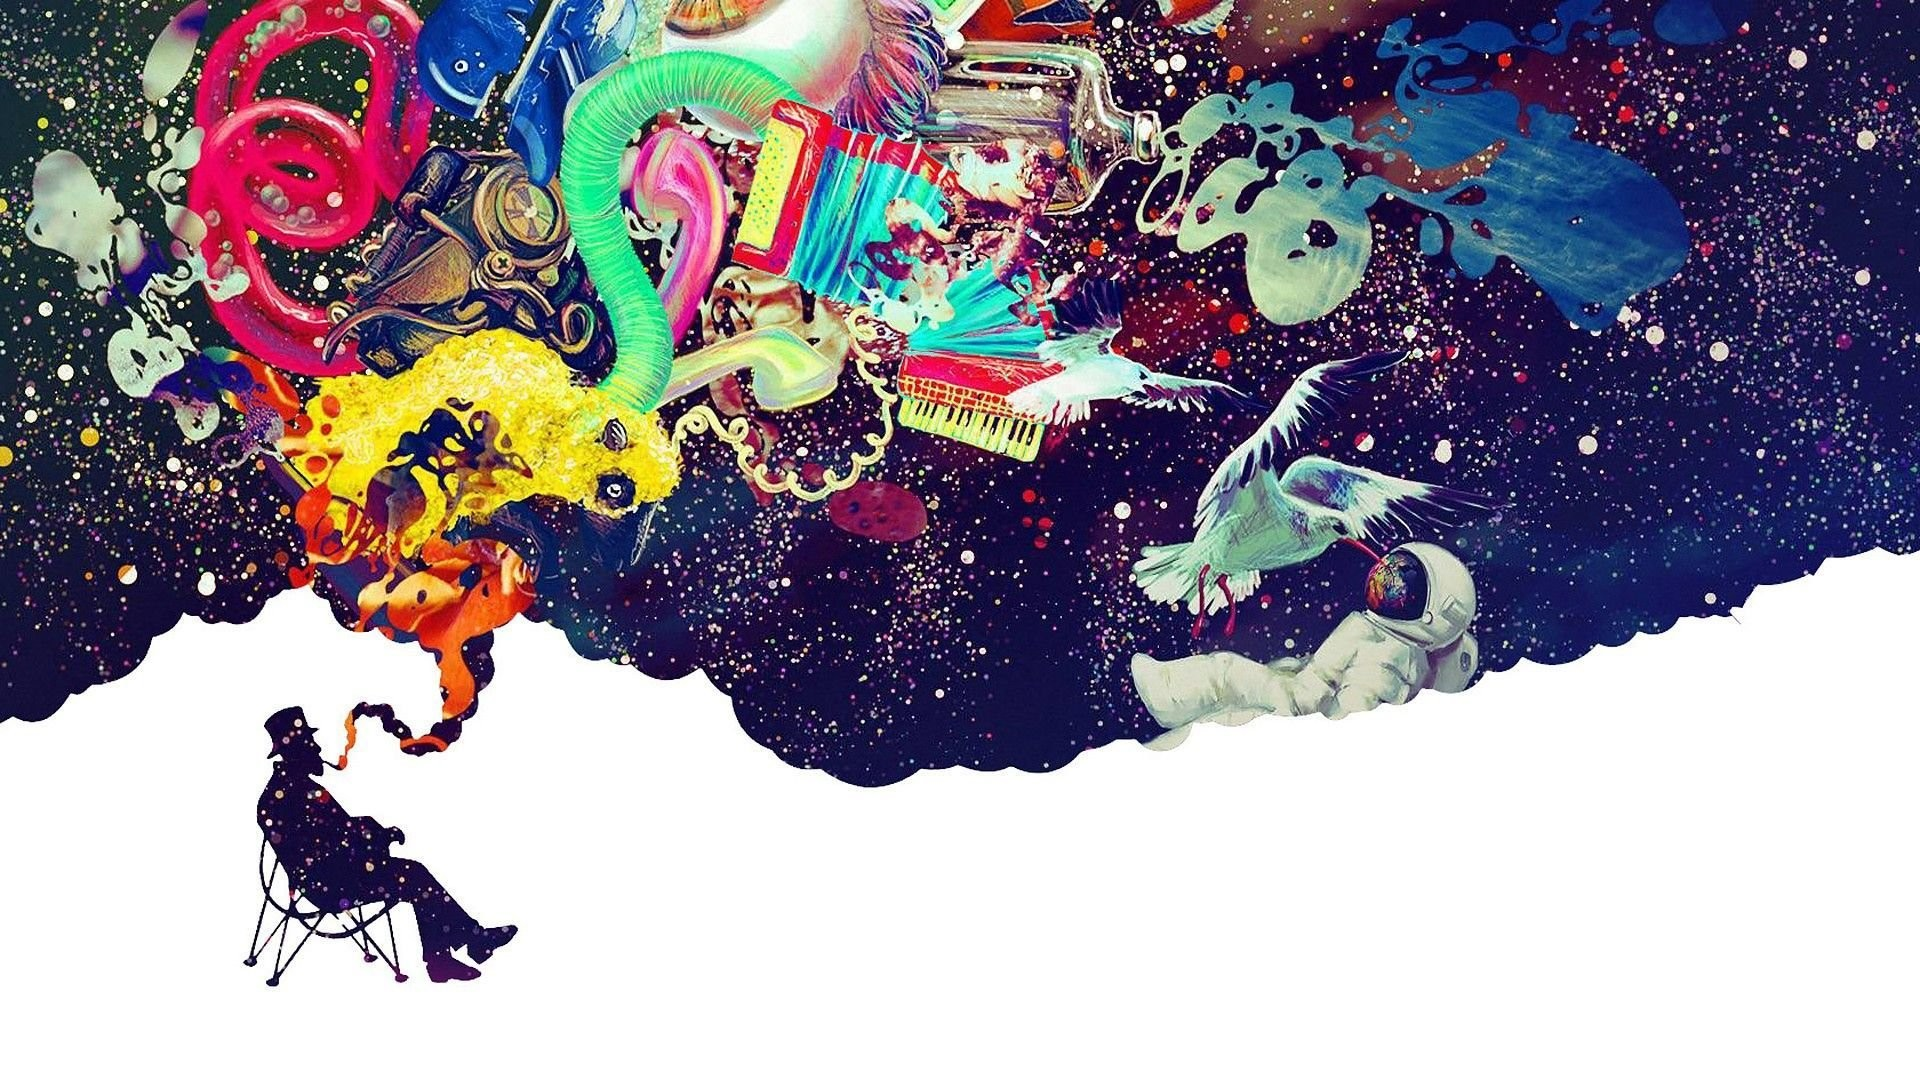 2560x1440 Trippy Wallpapers Hd Tumblr Indie